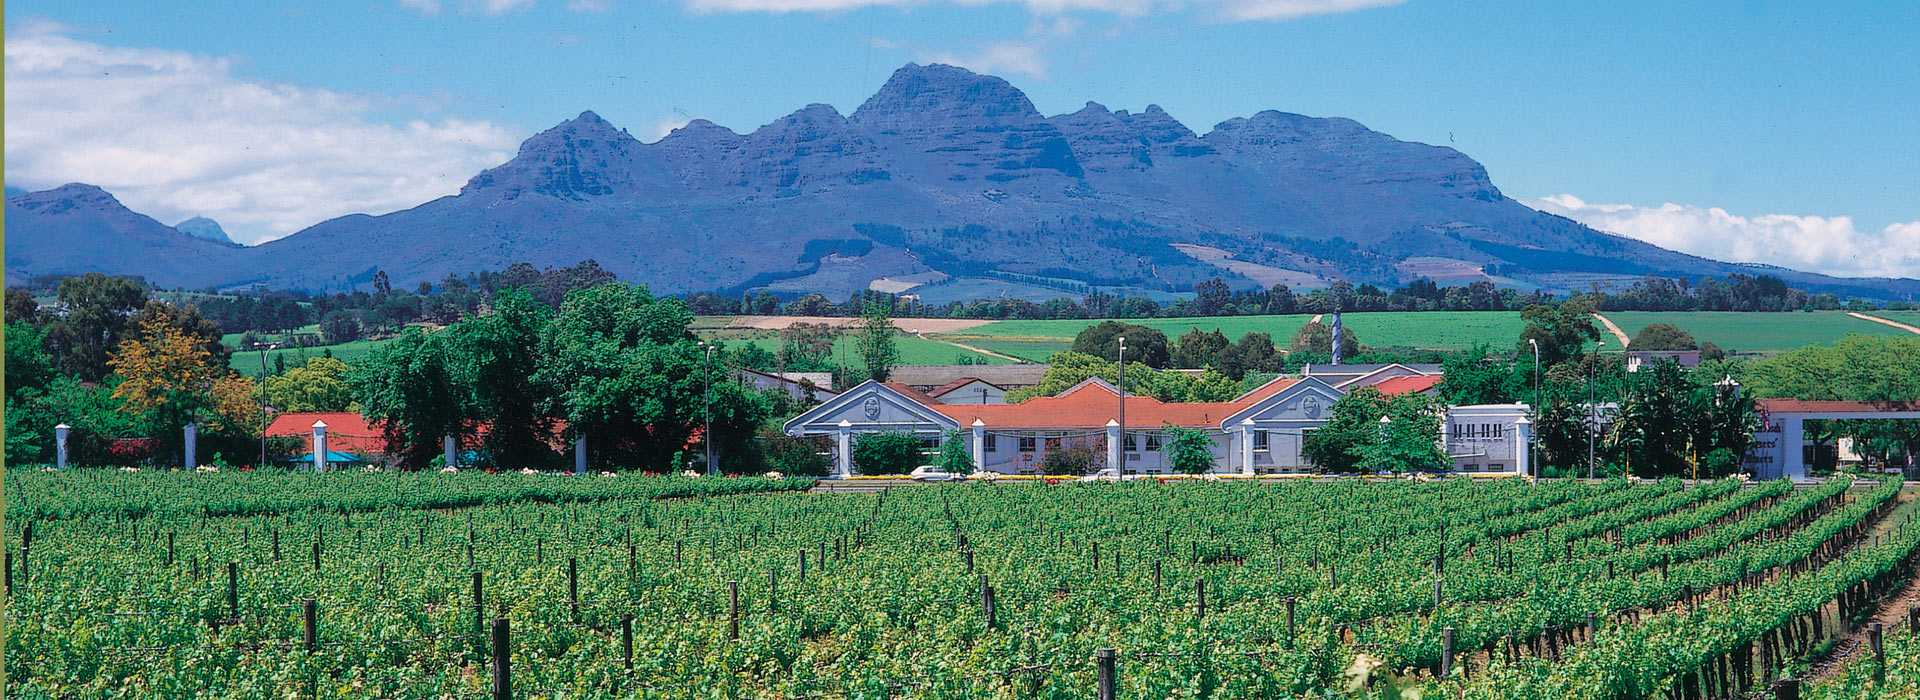 Vineyard In The Winelands, South Africa